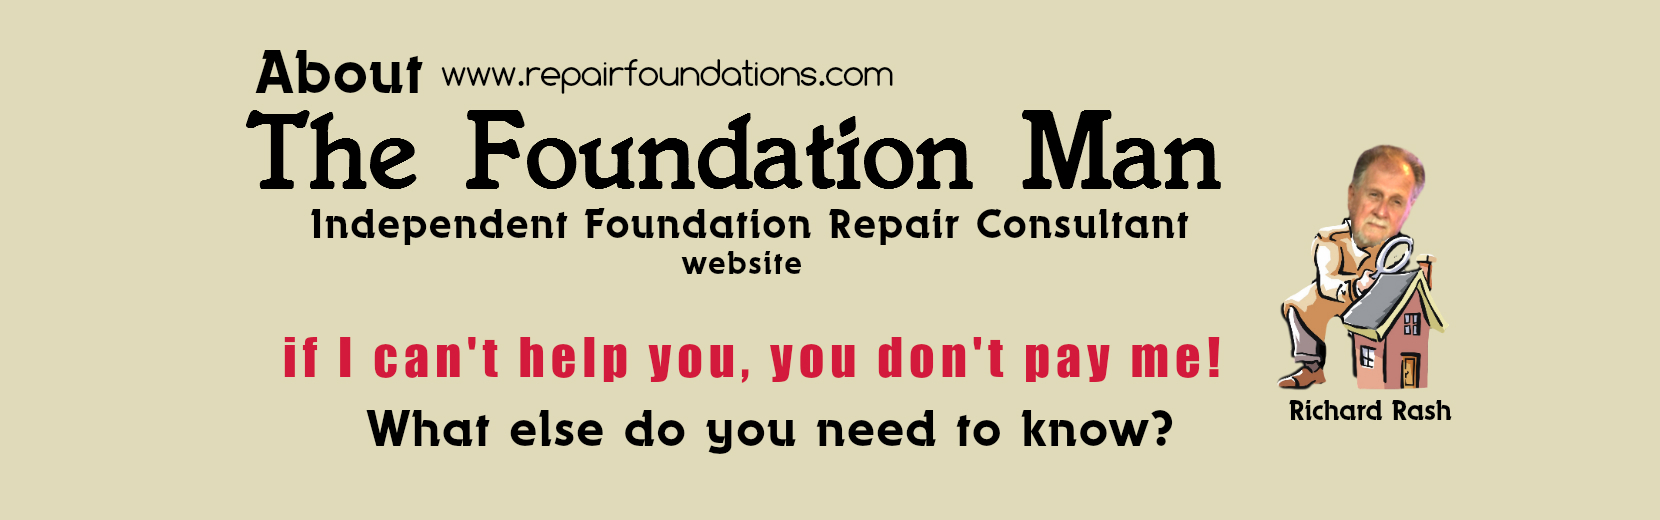 Foundation man website